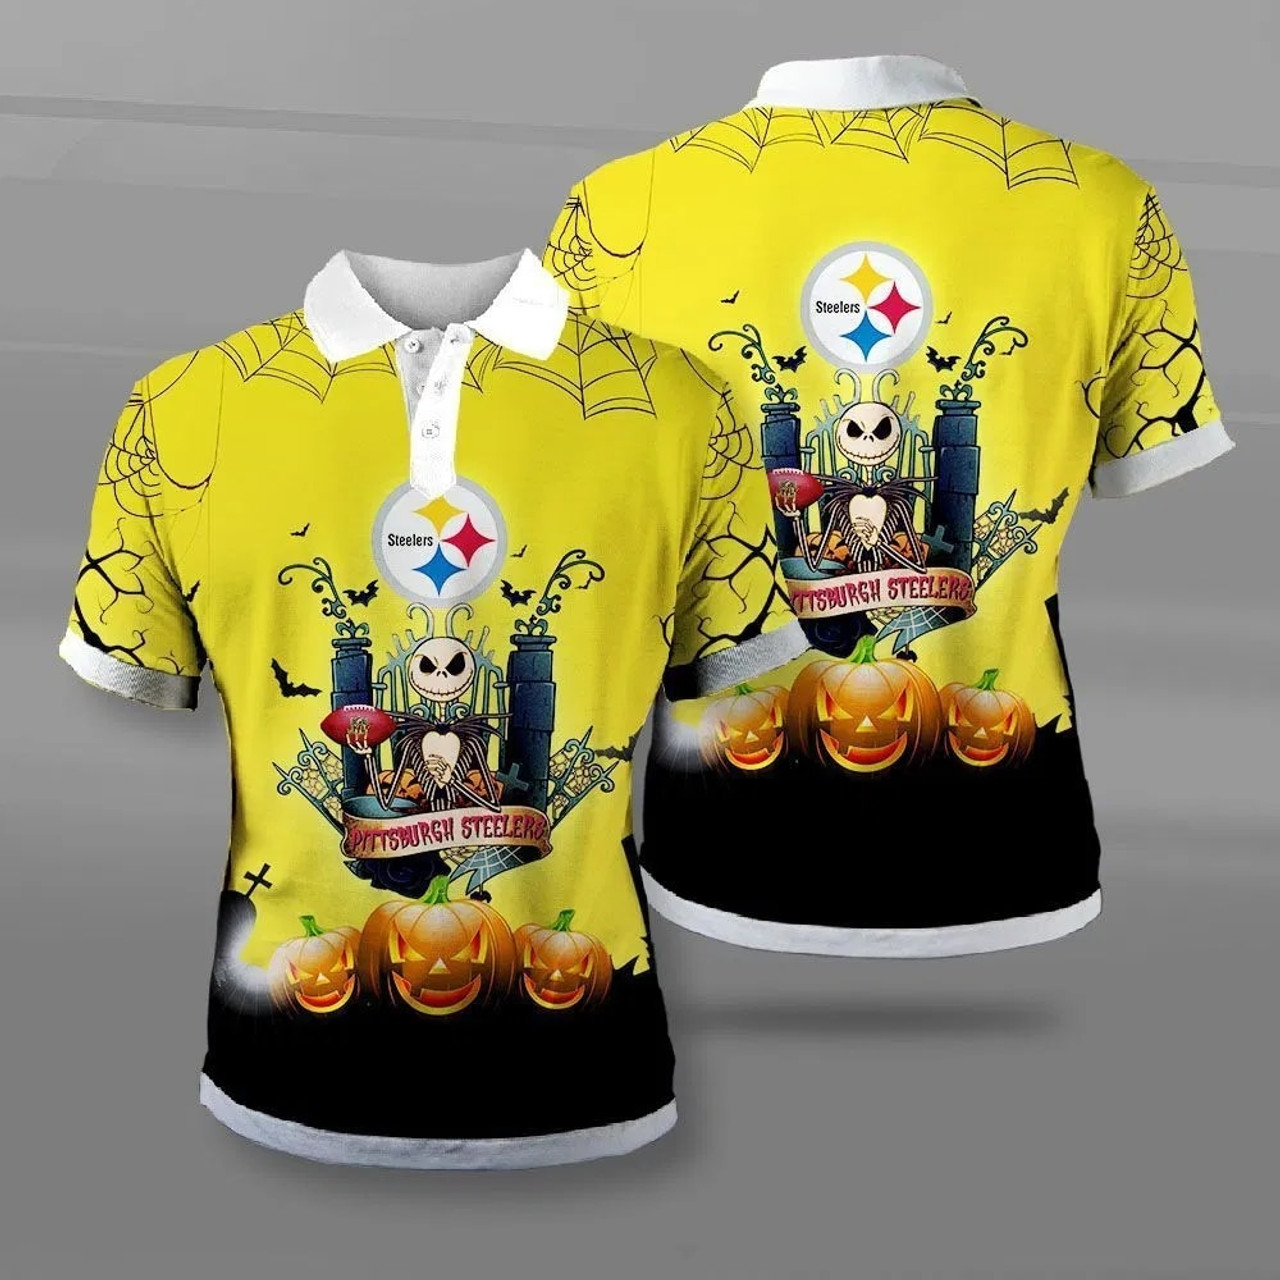 **(OFFICIAL-NEW-N.F.L.PITTSBURGH-STEELERS-TEAM-POLO-SHIRTS/CUSTOM-3D-STEELERS-OFFICIAL-LOGOS & OFFICIAL-CLASSIC-STEELERS-TEAM-COLORS/DETAILED-3D-GRAPHIC-PRINTED-DOUBLE-SIDED-DESIGN/PREMIUM-N.F.L.STEELERS-HALLOWEEN-NIGHTMARE-THEMED-POLO-SHIRTS)**